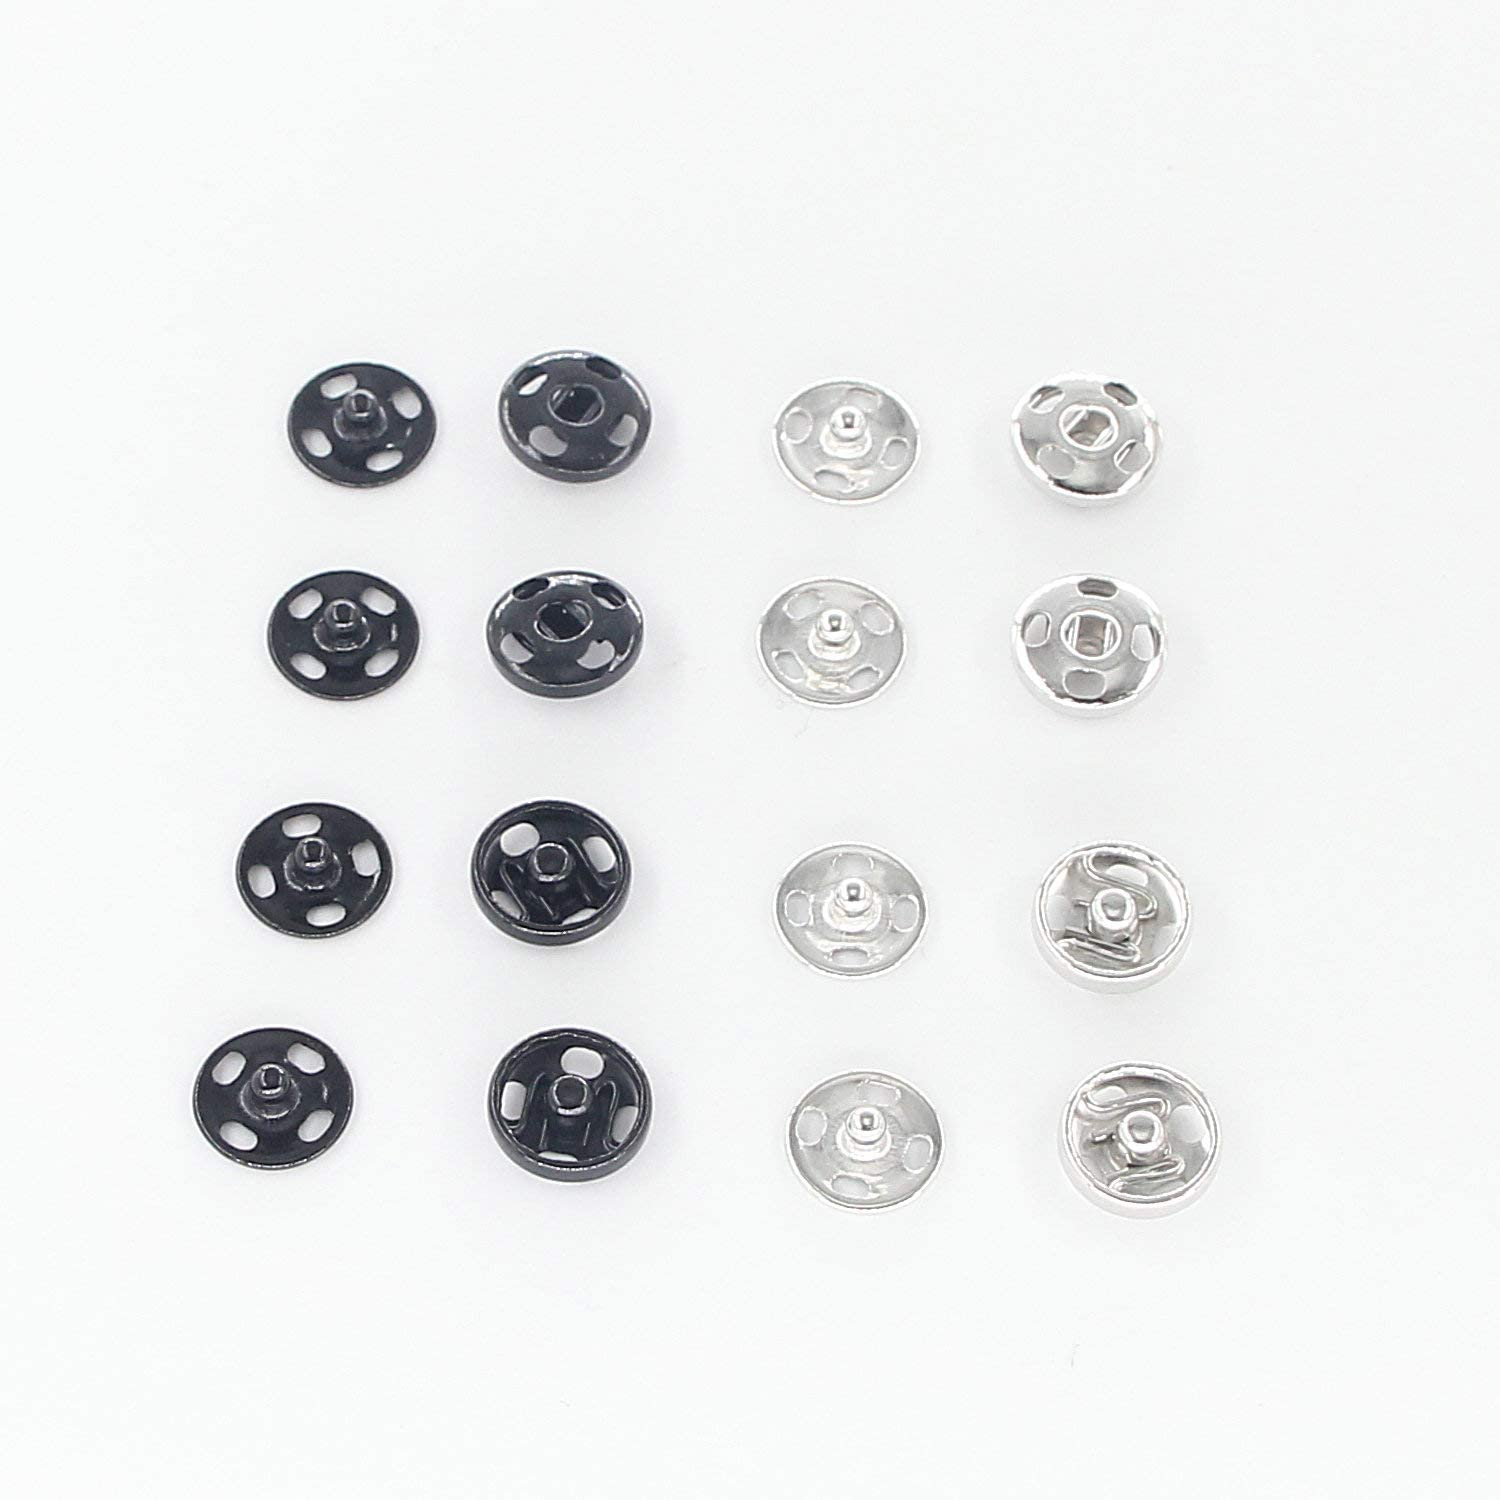 Leekayer 72 Sets Sew-on Snap Buttons Brass Snap Fastener Buttons Press Button for Sewing Clothing, Black and Silver(10 mm)